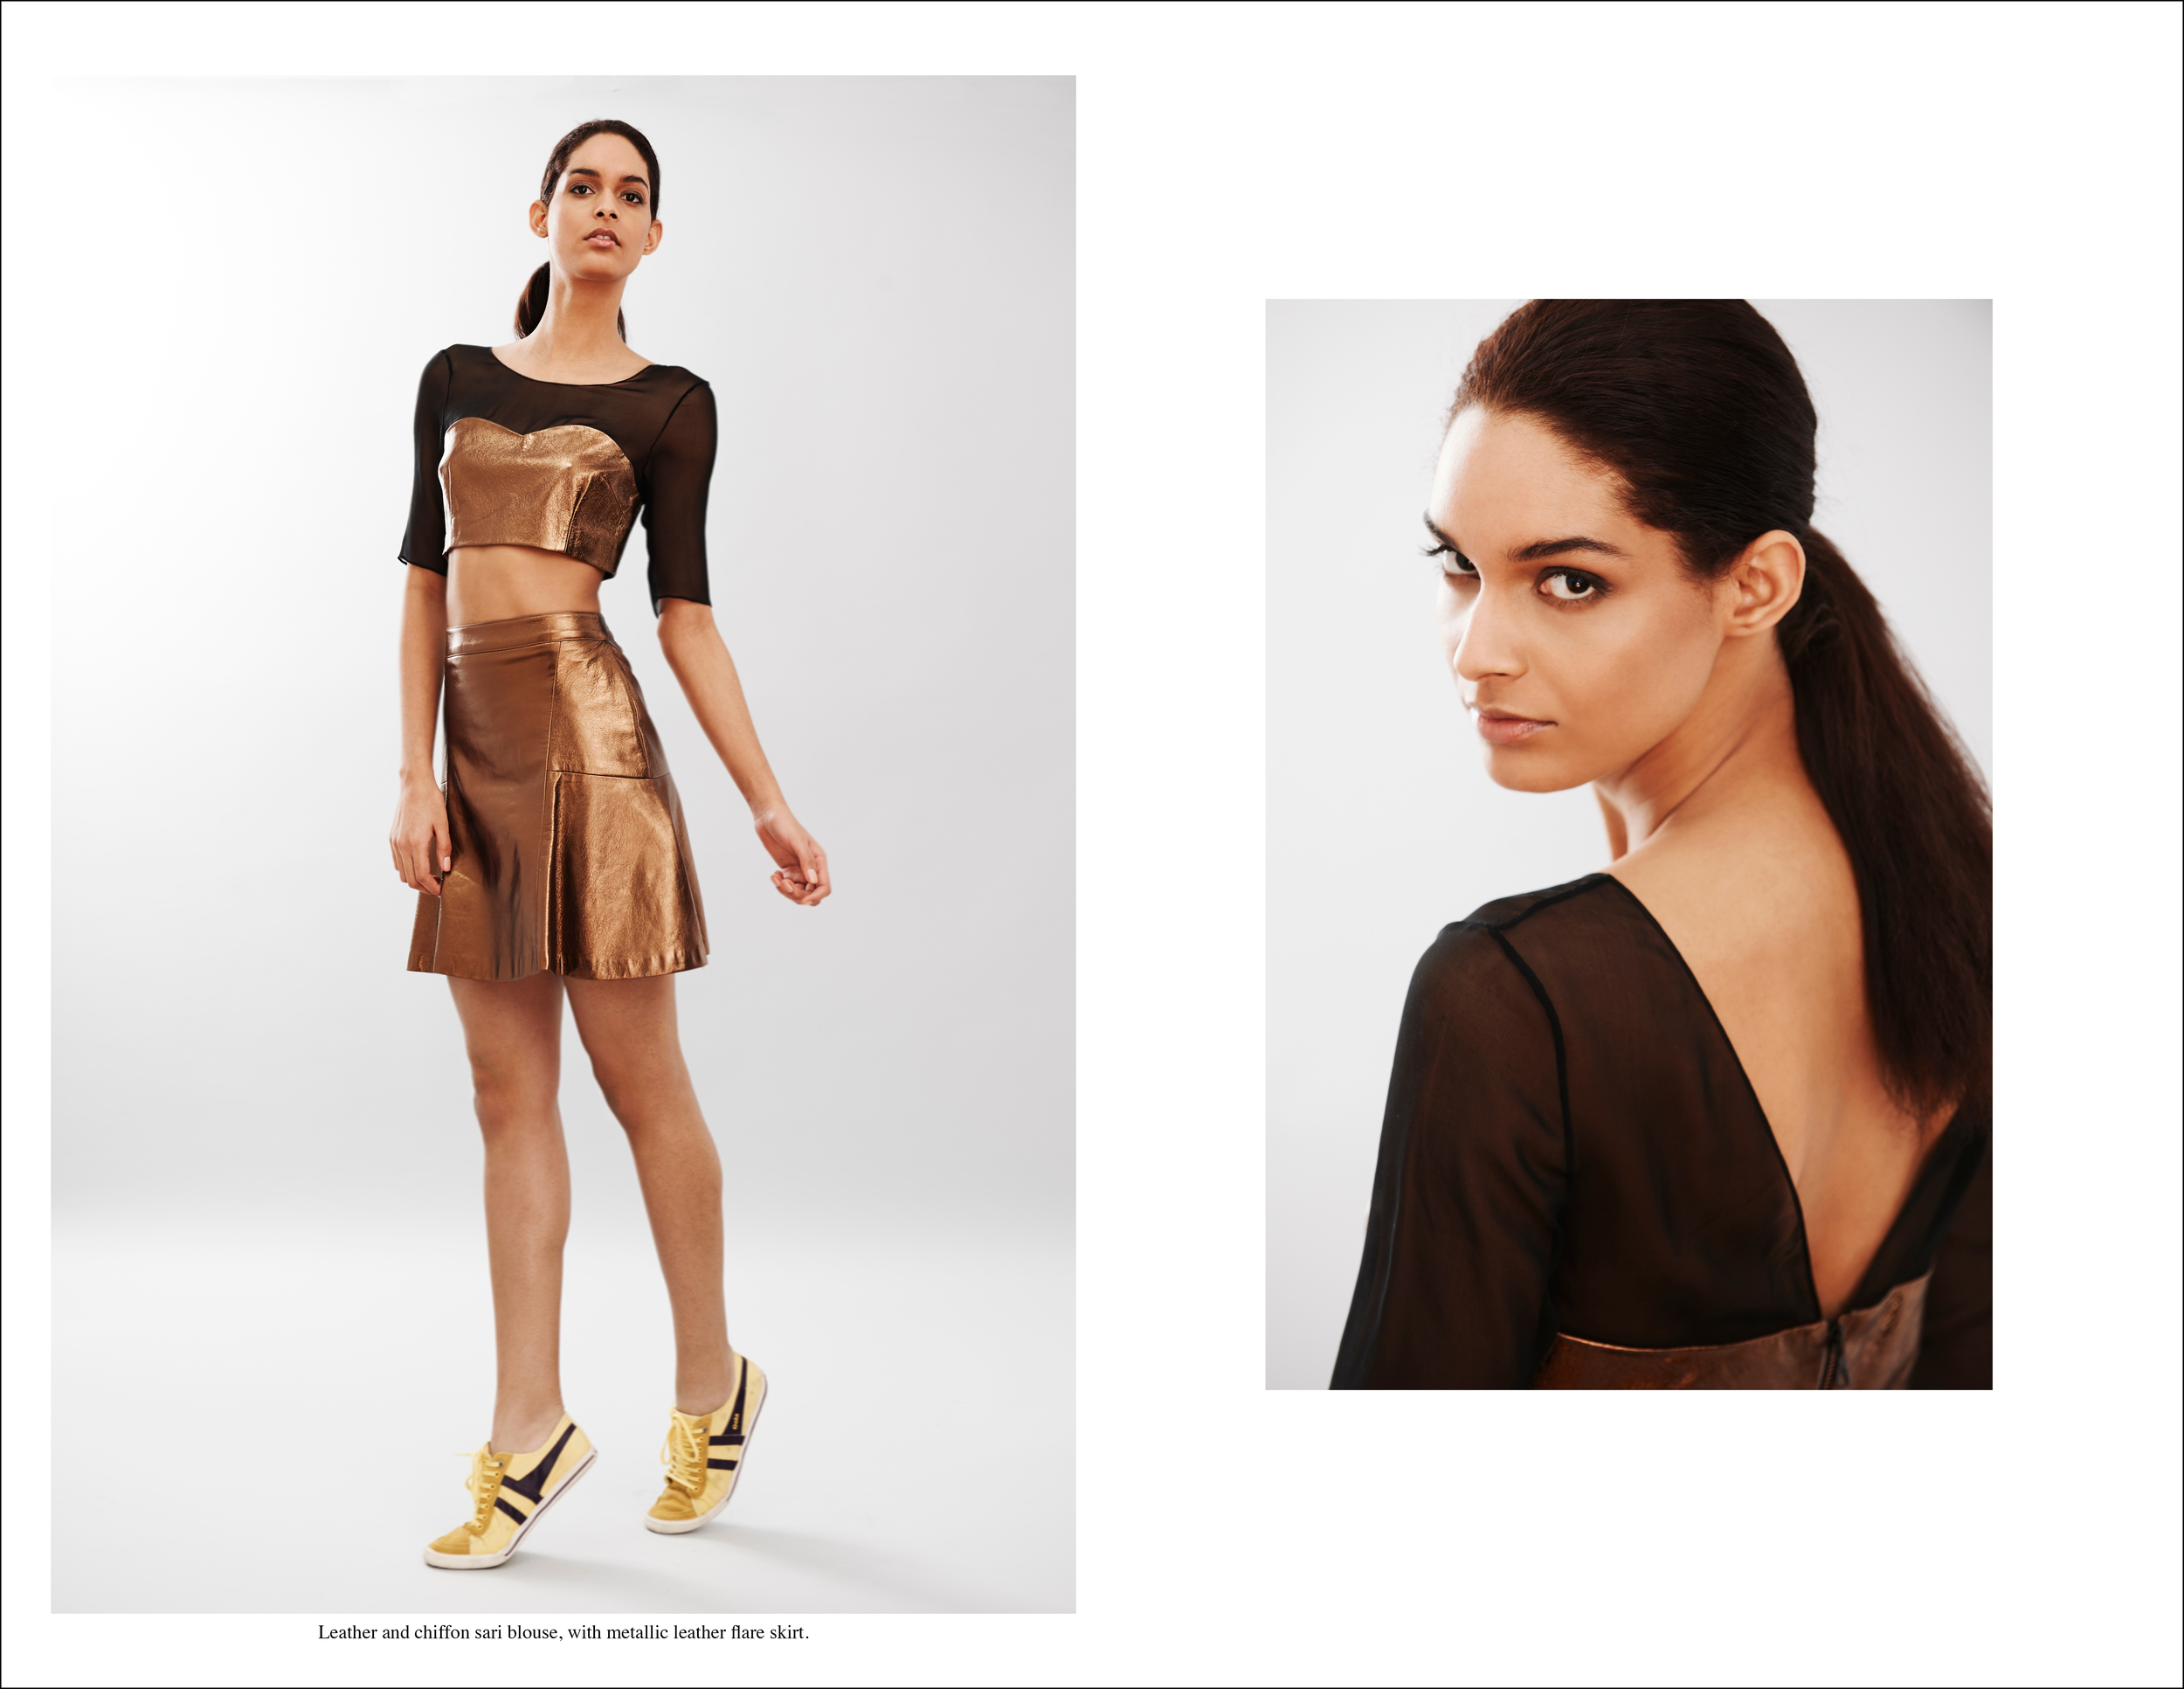 abacaxi Leather and chiffon sari blouse, with metallic leather flare skirt..jpg